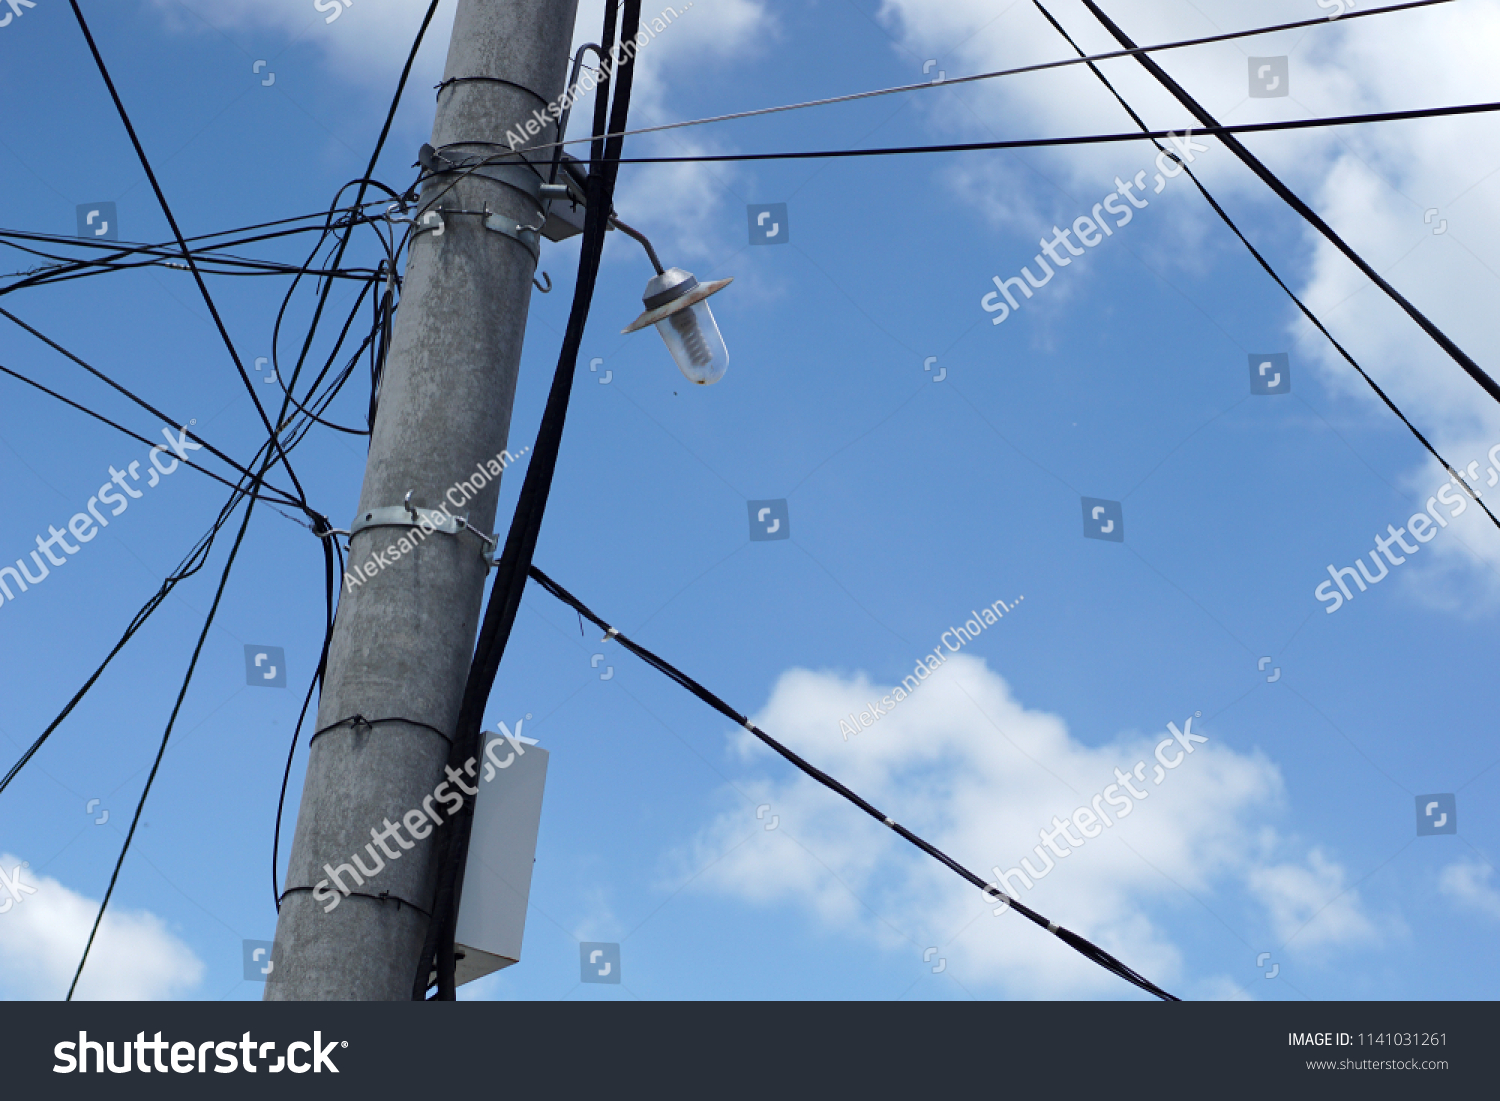 hight resolution of a telephone cable messy net against a blue sky